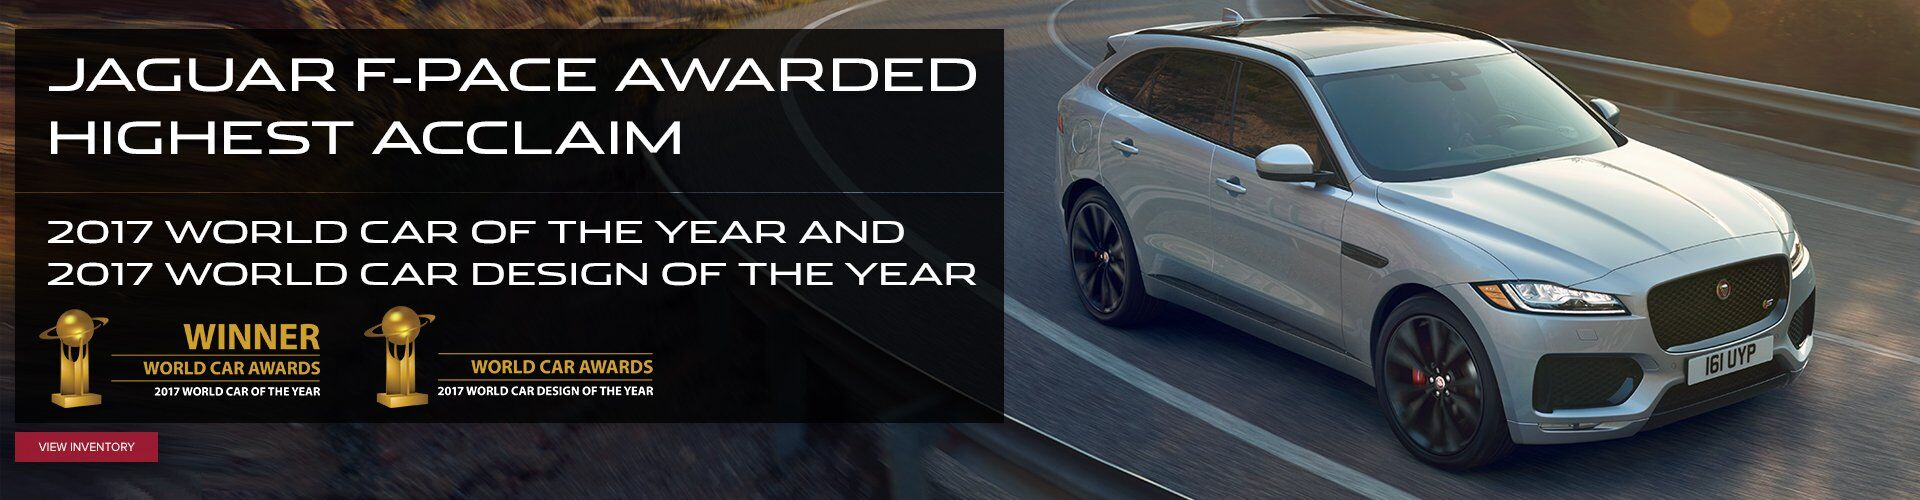 F-PACE World Car of the Year